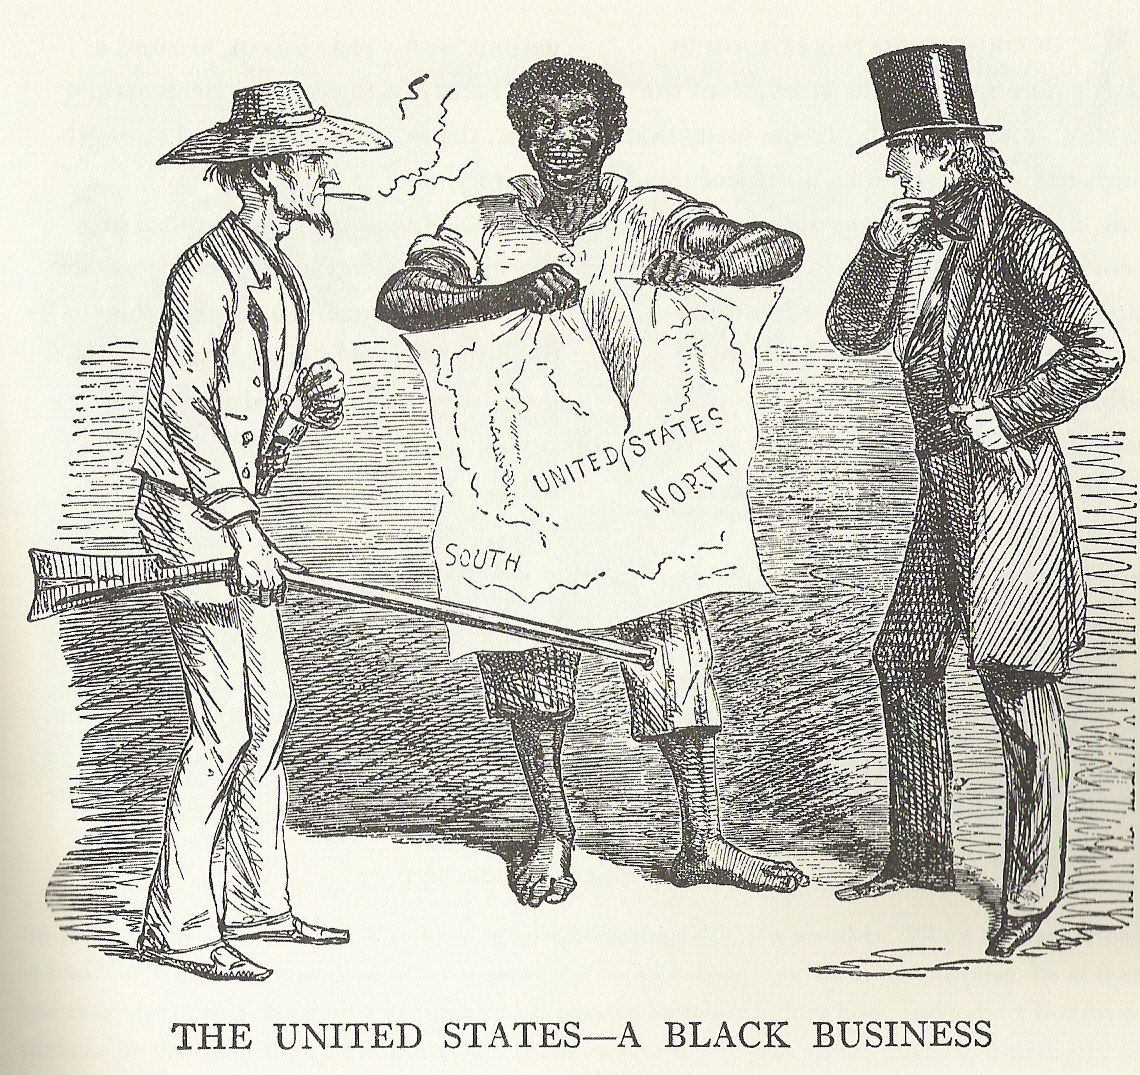 an analysis of the blacks in the civil war in the united states By william black updated may 13, 2017, 10:05am edt  and if the united states  had avoided civil war, what would that have meant for the  this interpretation of  the antebellum north and south fit well within postwar modernization theory.